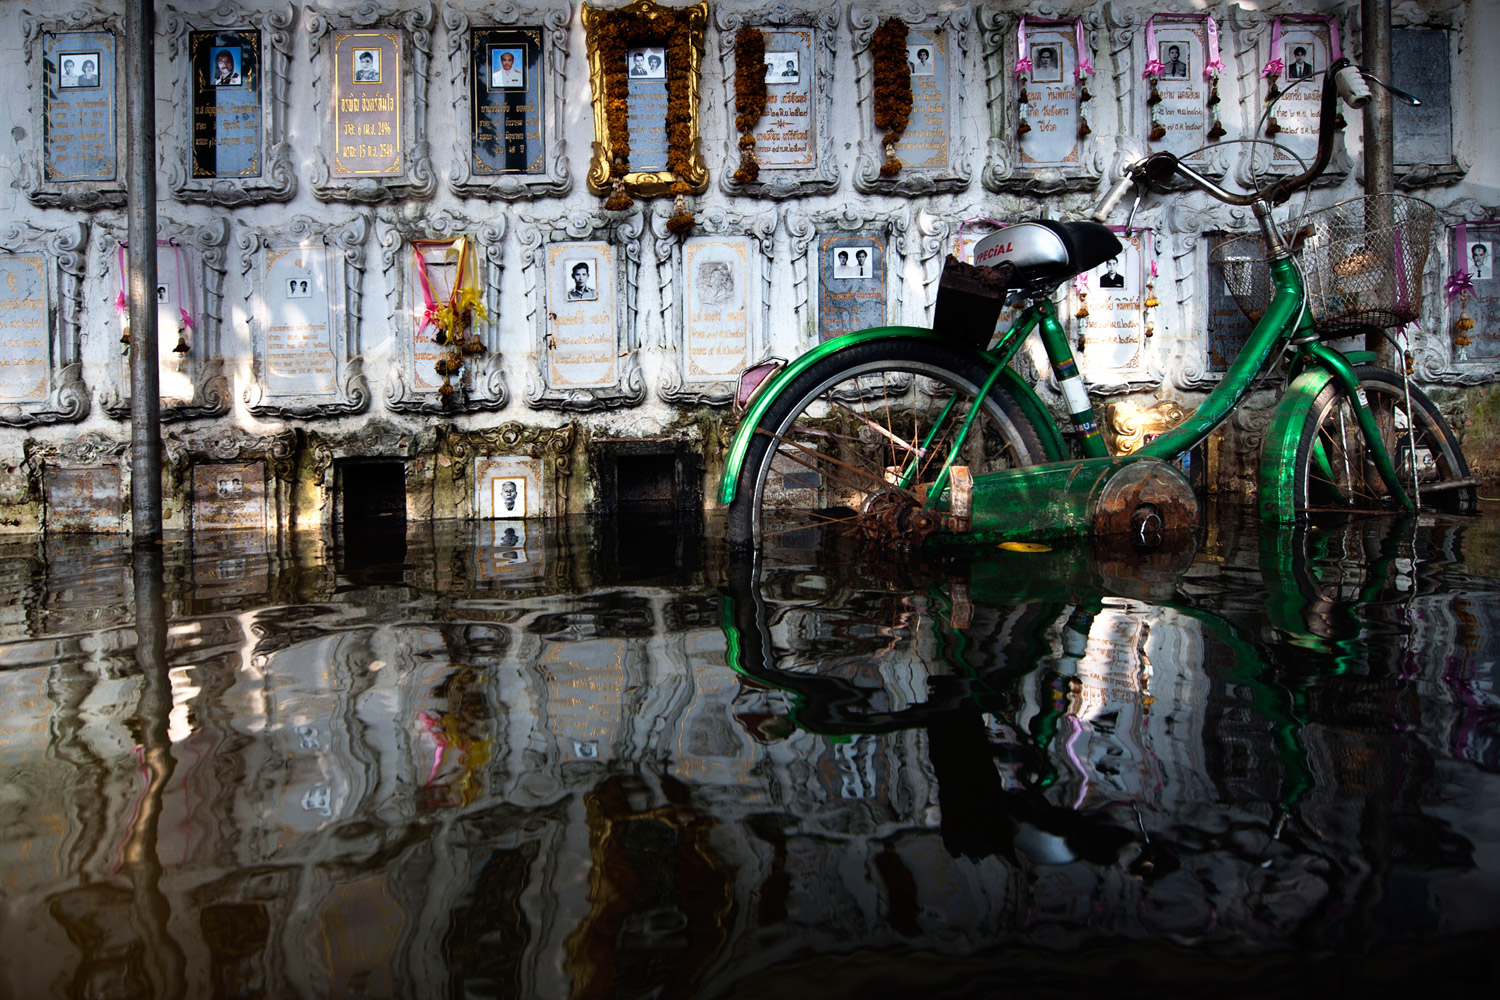 November 18, 2011. A bicycle leans against the tombstones in a flooded temple in Dong Muaeng area. Severe flooding since October, which has left hundreds of people dead, has also hurt a wide range of industries in the production hub, particularly the automotive and computer hard-disk drive sectors. The consequences have been global, hitting large number of international companies. Thailand has experiencing the worst floods in 50 years.